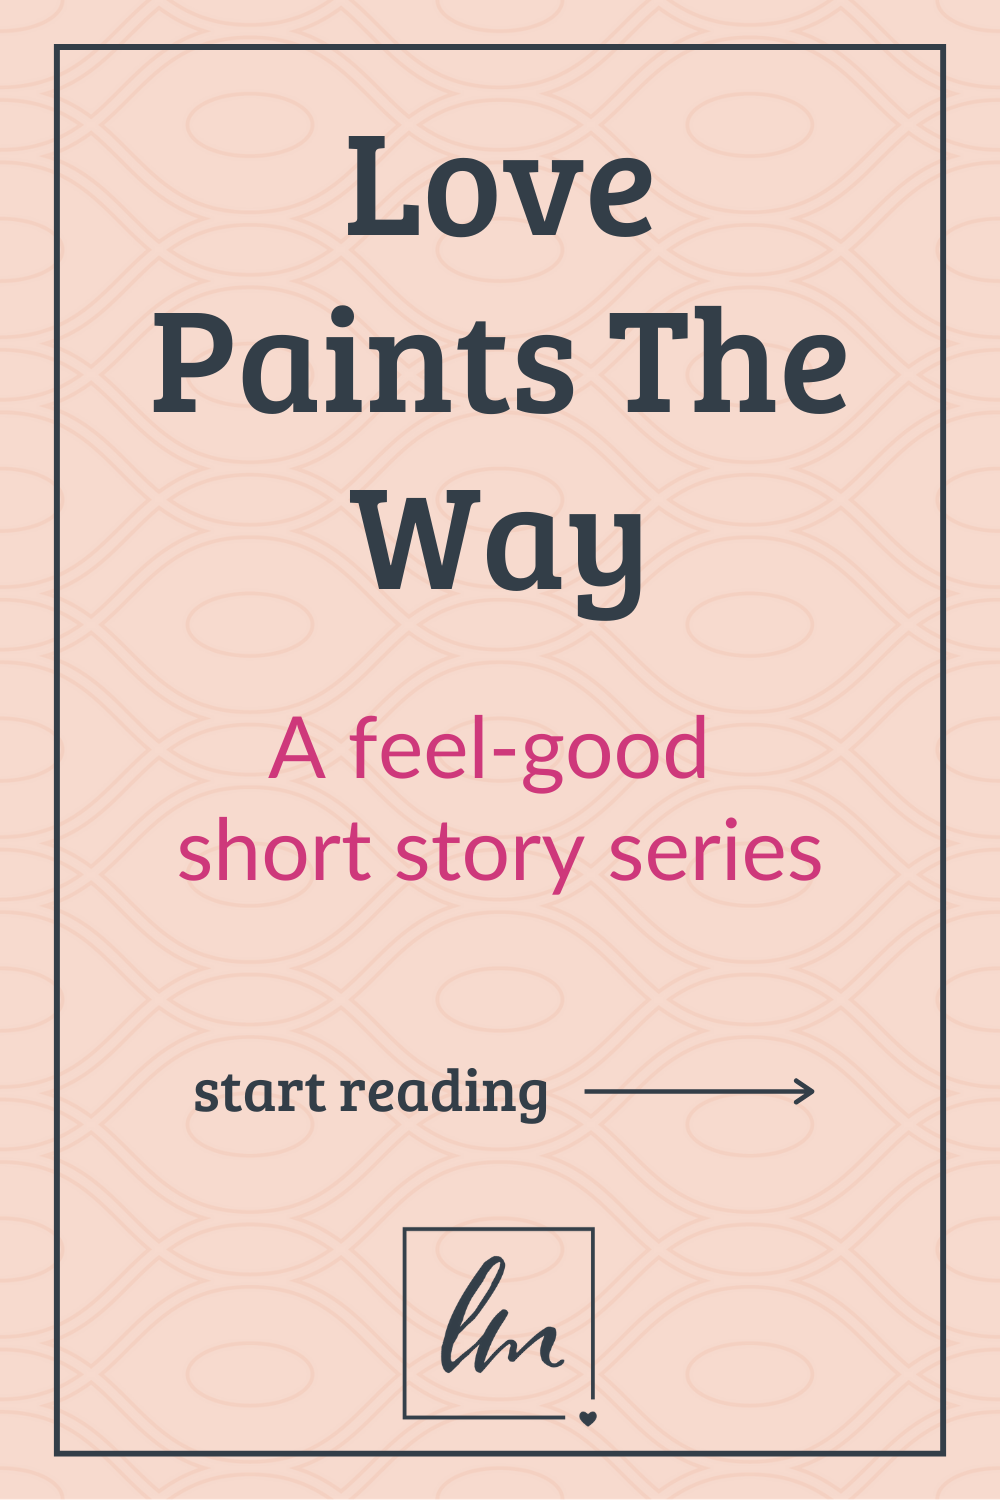 Feel-Good Short Stories Book Club   Love stories to read